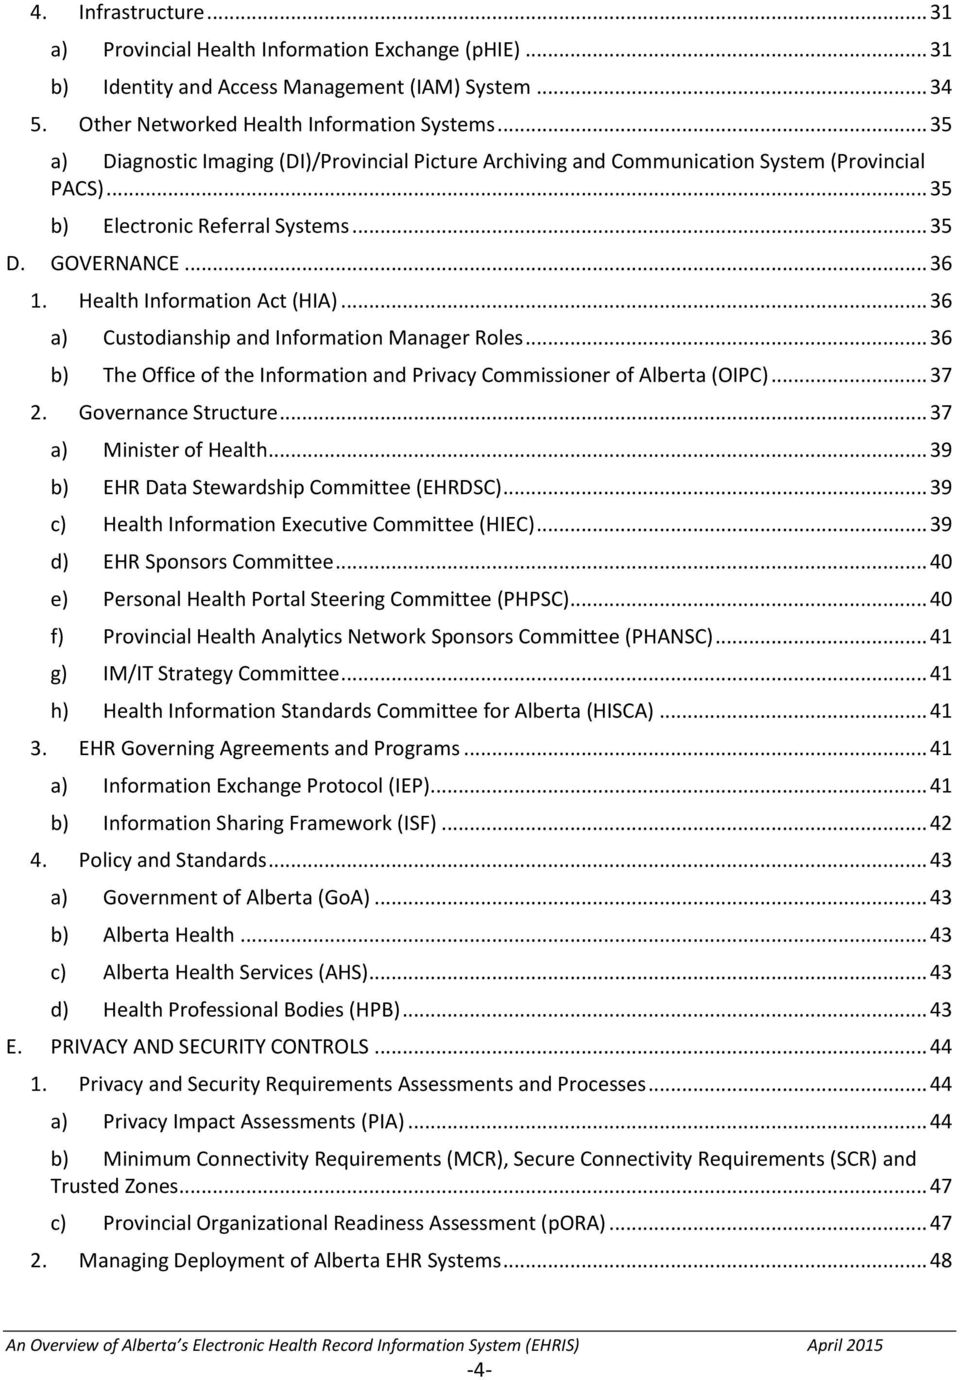 .. 36 a) Custodianship and Information Manager Roles... 36 b) The Office of the Information and Privacy Commissioner of Alberta (OIPC)... 37 2. Governance Structure... 37 a) Minister of Health.